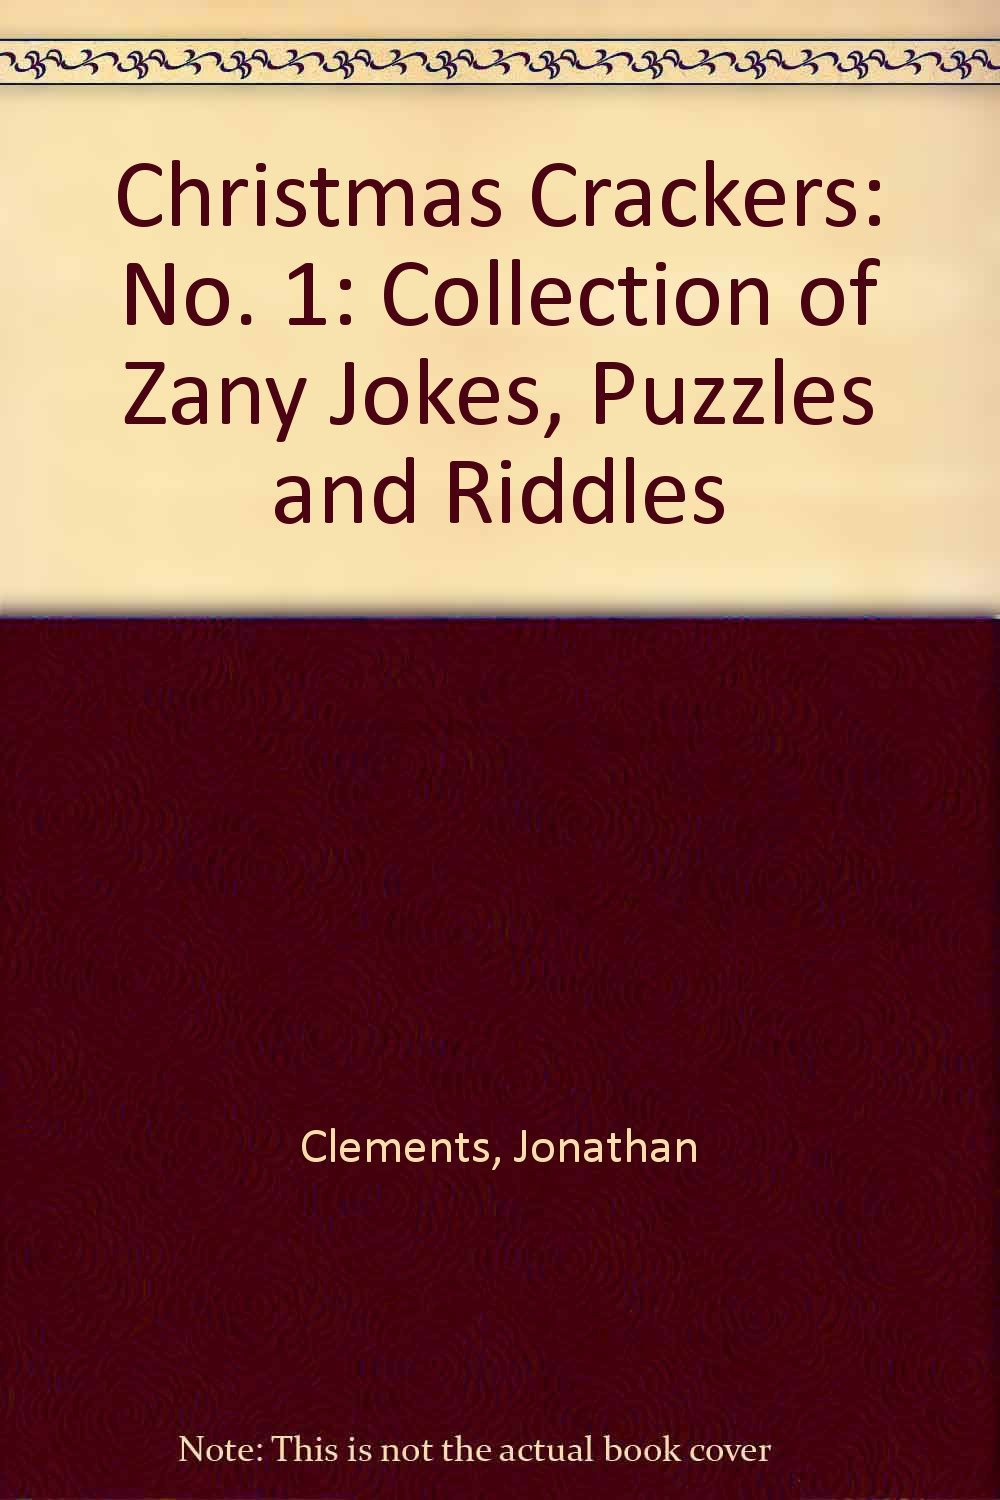 Buy Christmas Crackers No 1 Collection Of Zany Jokes Puzzles And Riddles Book Online At Low Prices In India Christmas Crackers No 1 Collection Of Zany Jokes Puzzles And Riddles Reviews